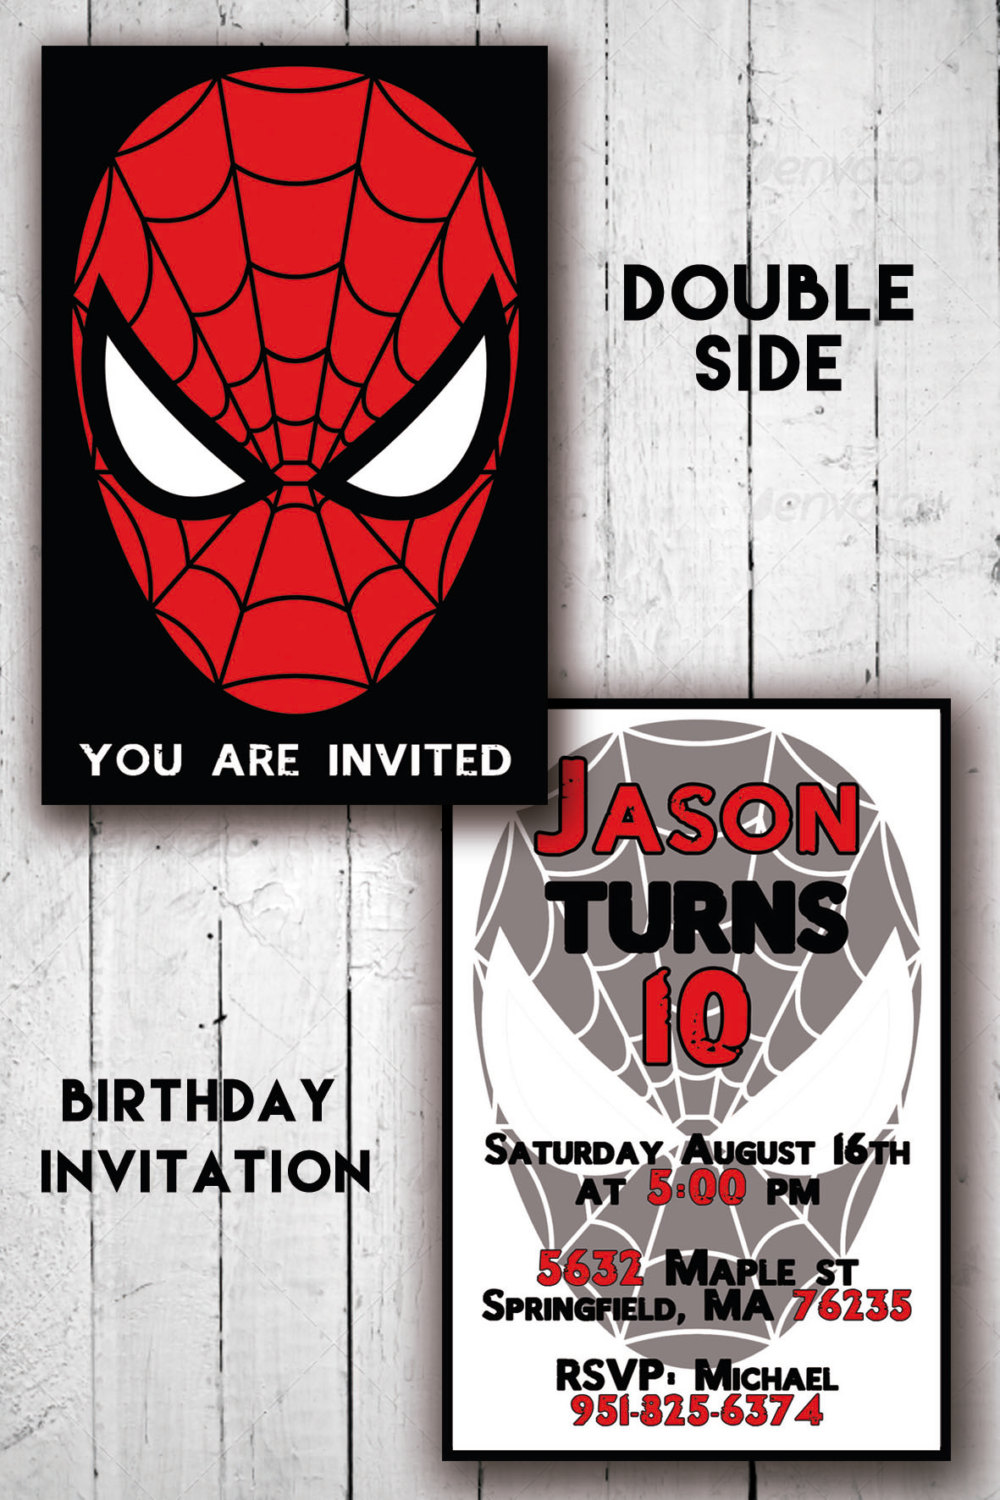 image relating to Printable Spiderman Invitations named DS SPIDERMAN INVITATION - Birthday Invitation - Children Occasion invites - Printable - Invitacion marketed by means of artofjah